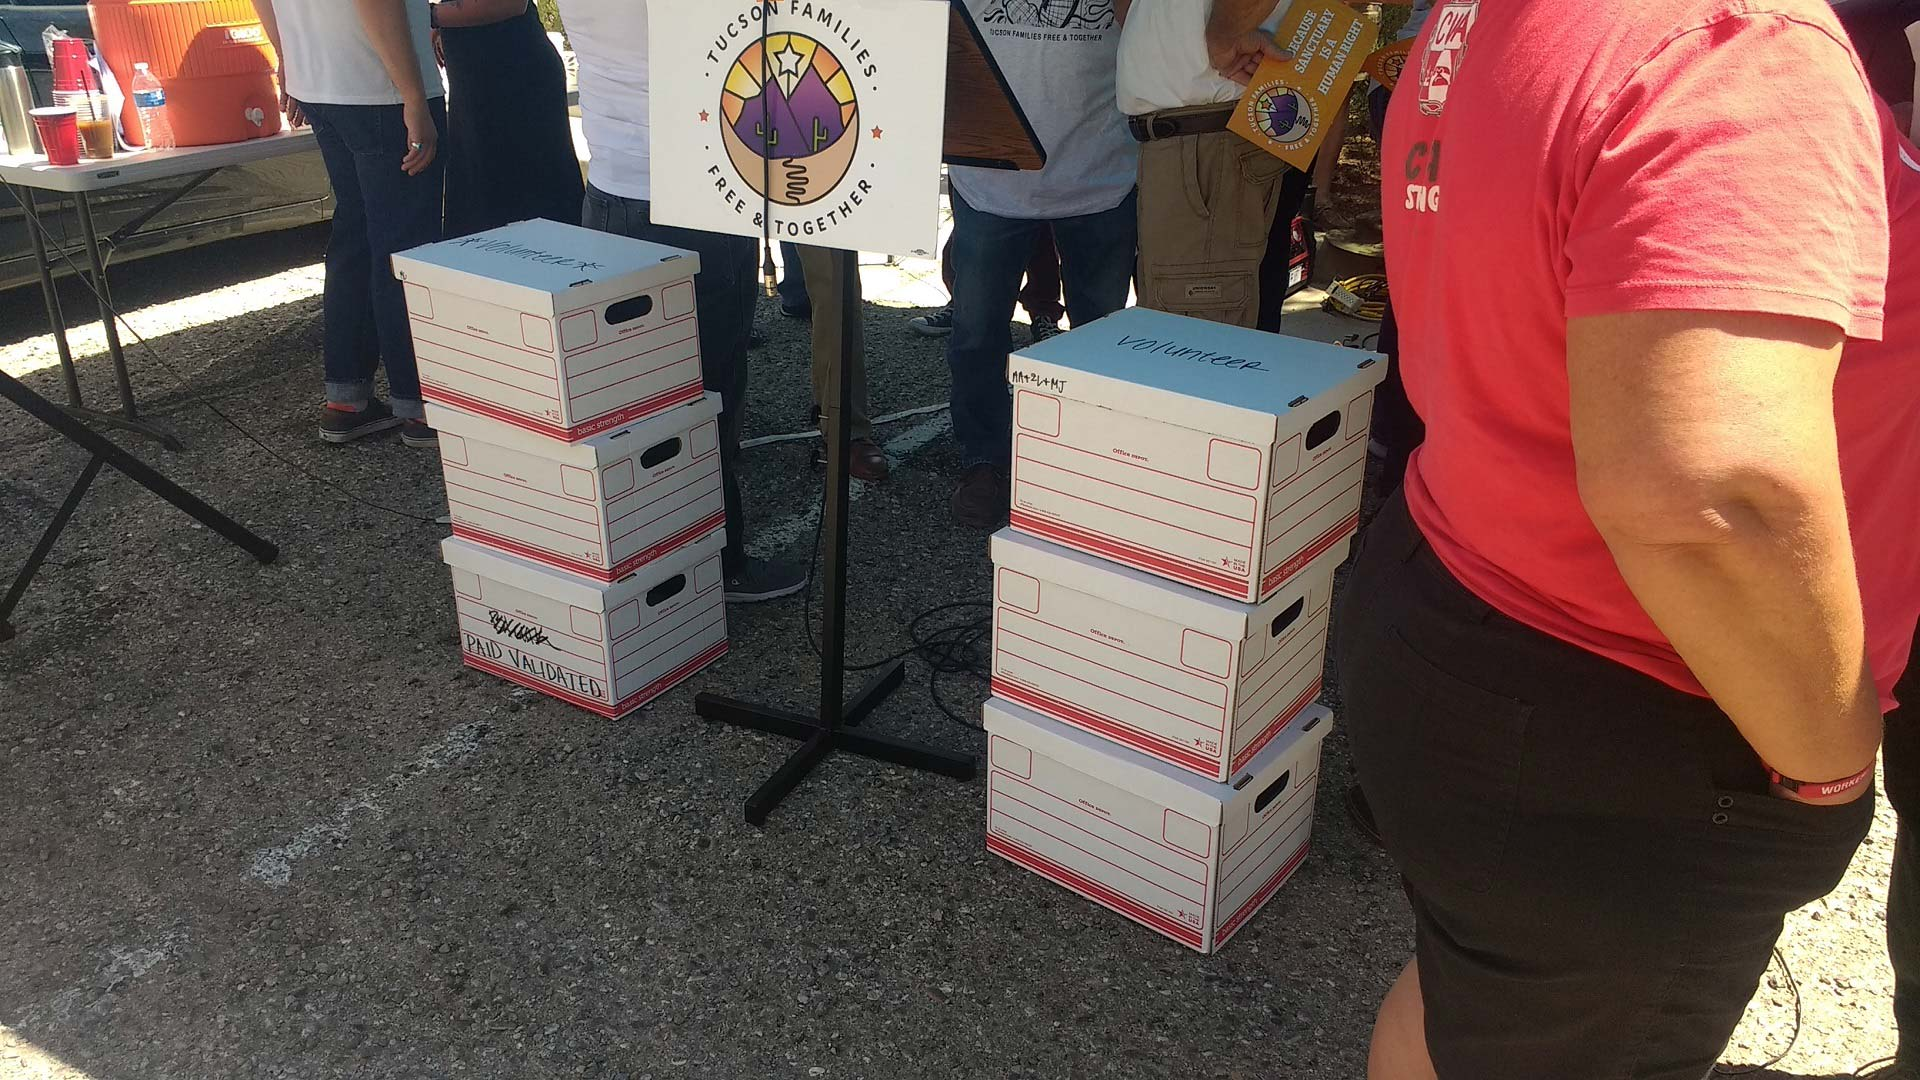 Boxes containing petitions collected by the People's Defense Initiative were displayed on July 3, 2019, before the group submitted them to Tucson city officials. The group claims it collected 18,155 signatures, more than the 9,200 needed to qualify its proposed Sanctuary City ordinance for the Nov. 5, 2019 Tucson city election ballot.